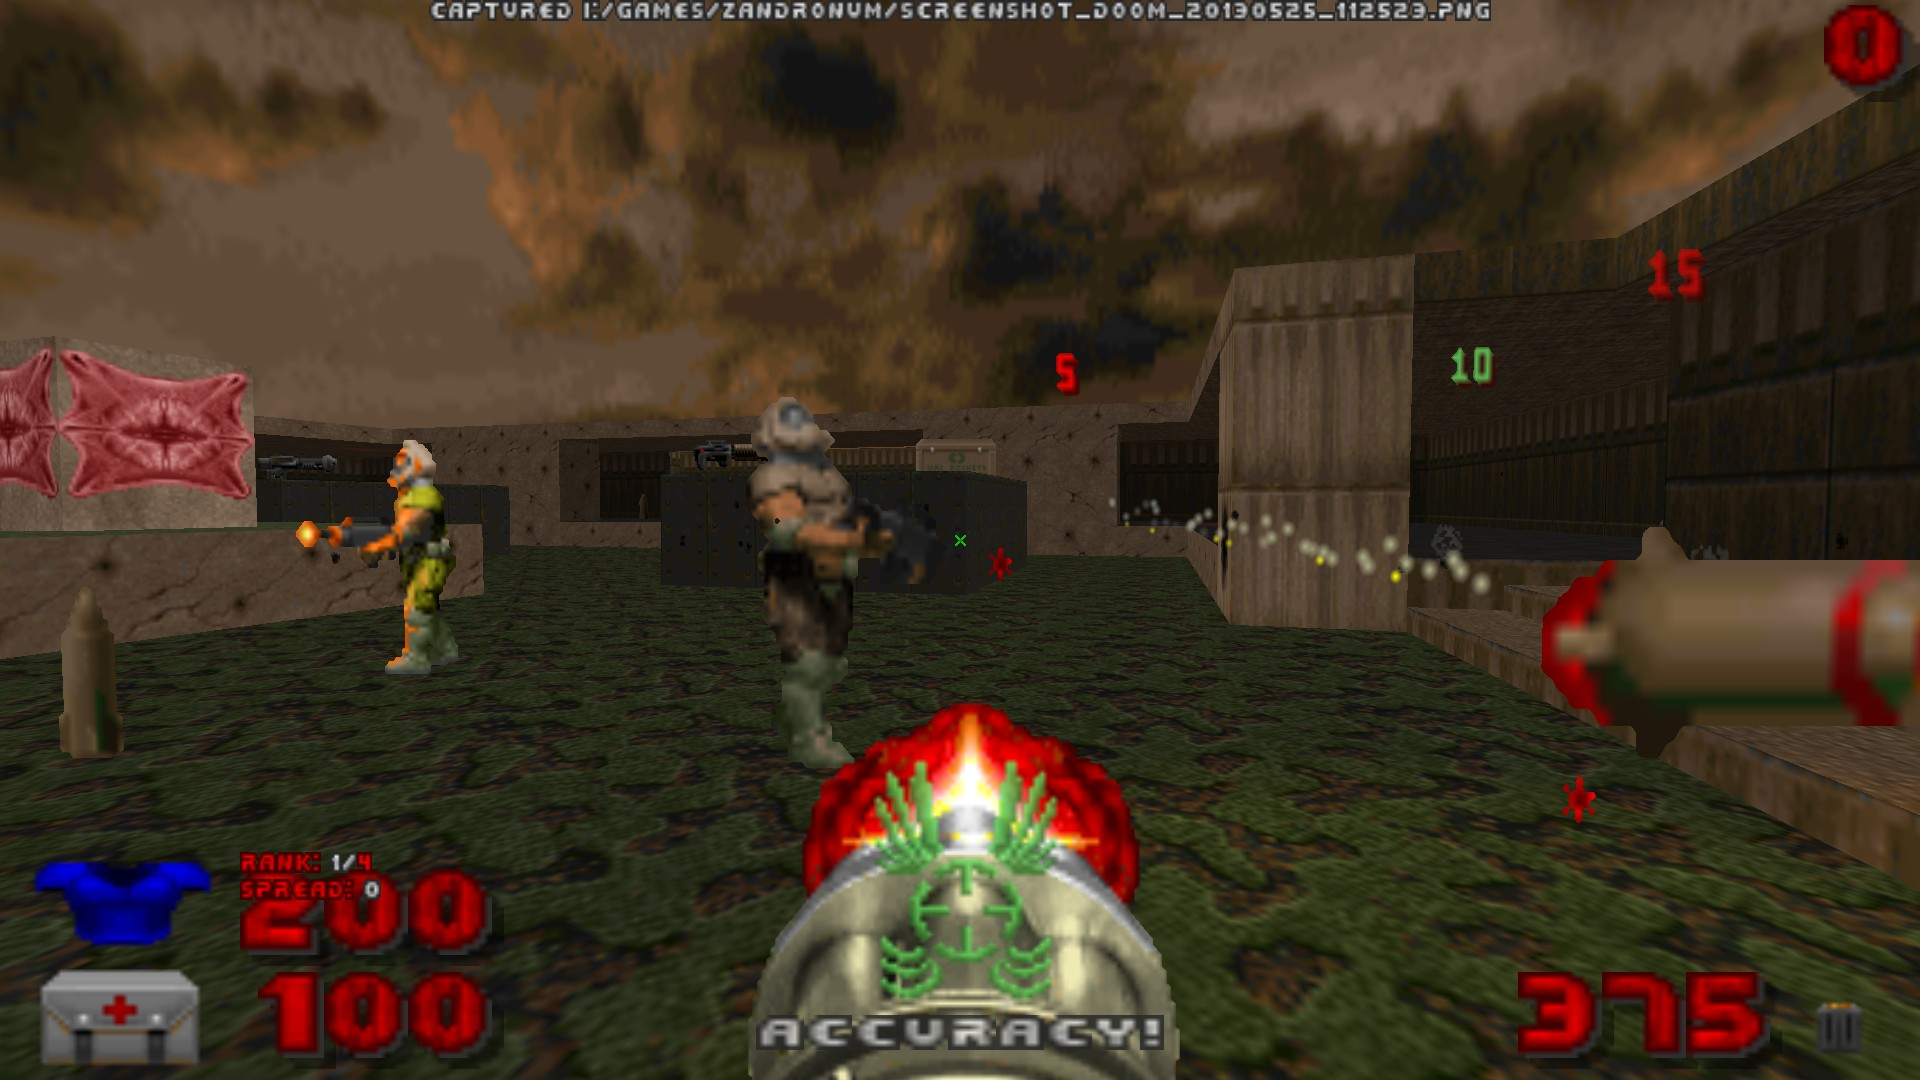 Screenshot_Doom_20130525_112525.jpg